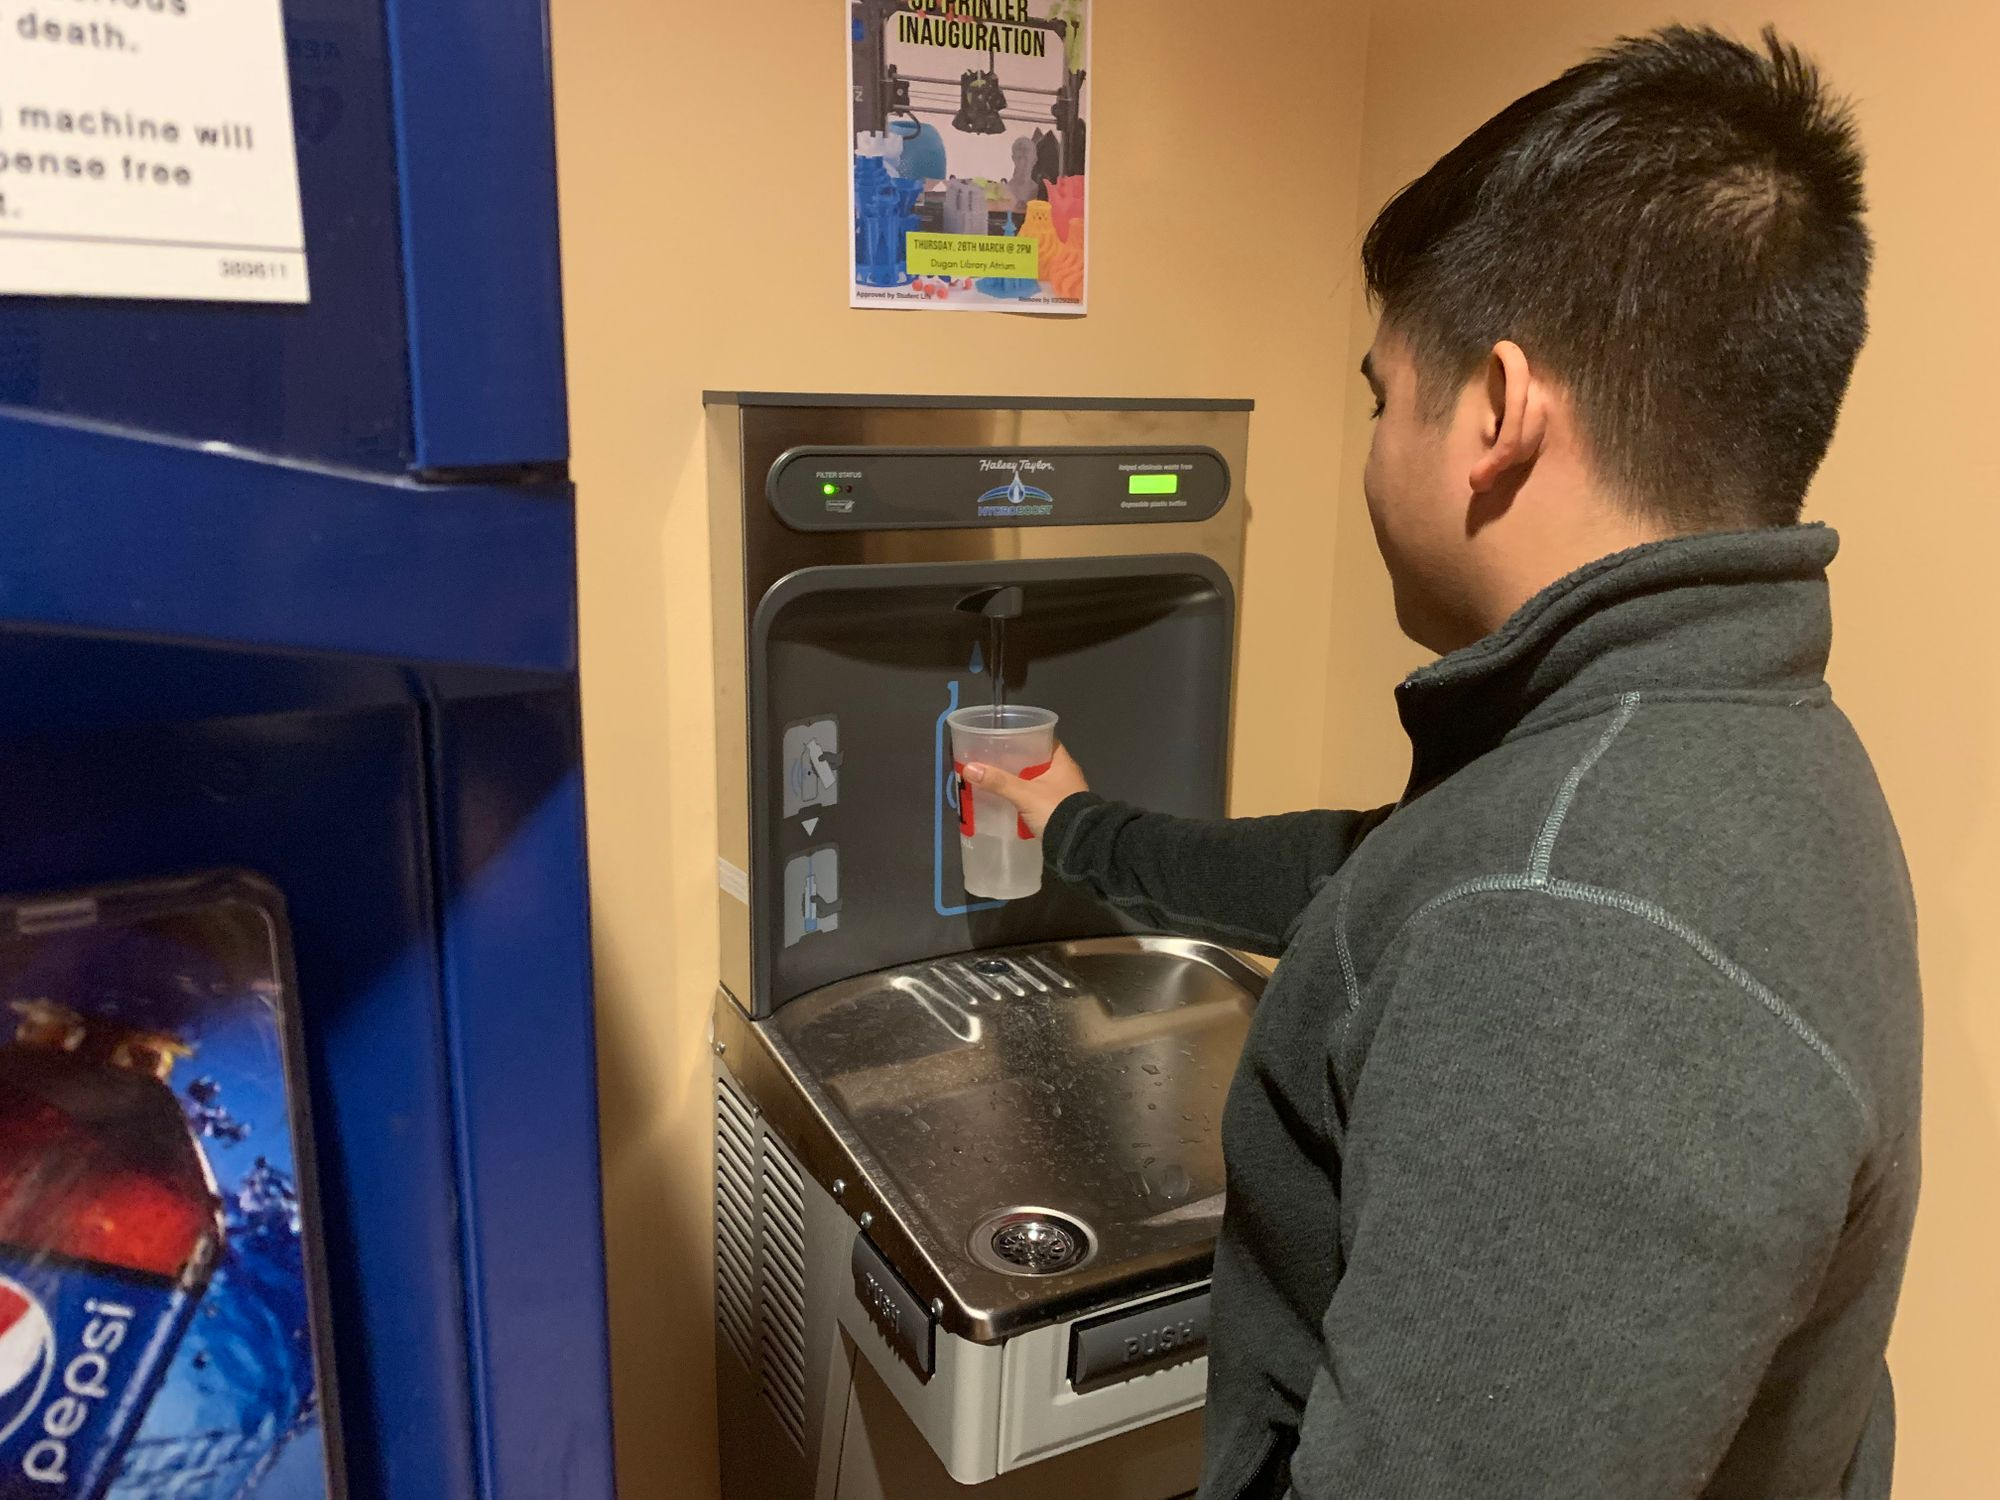 Water fountains get upgraded to fill stations